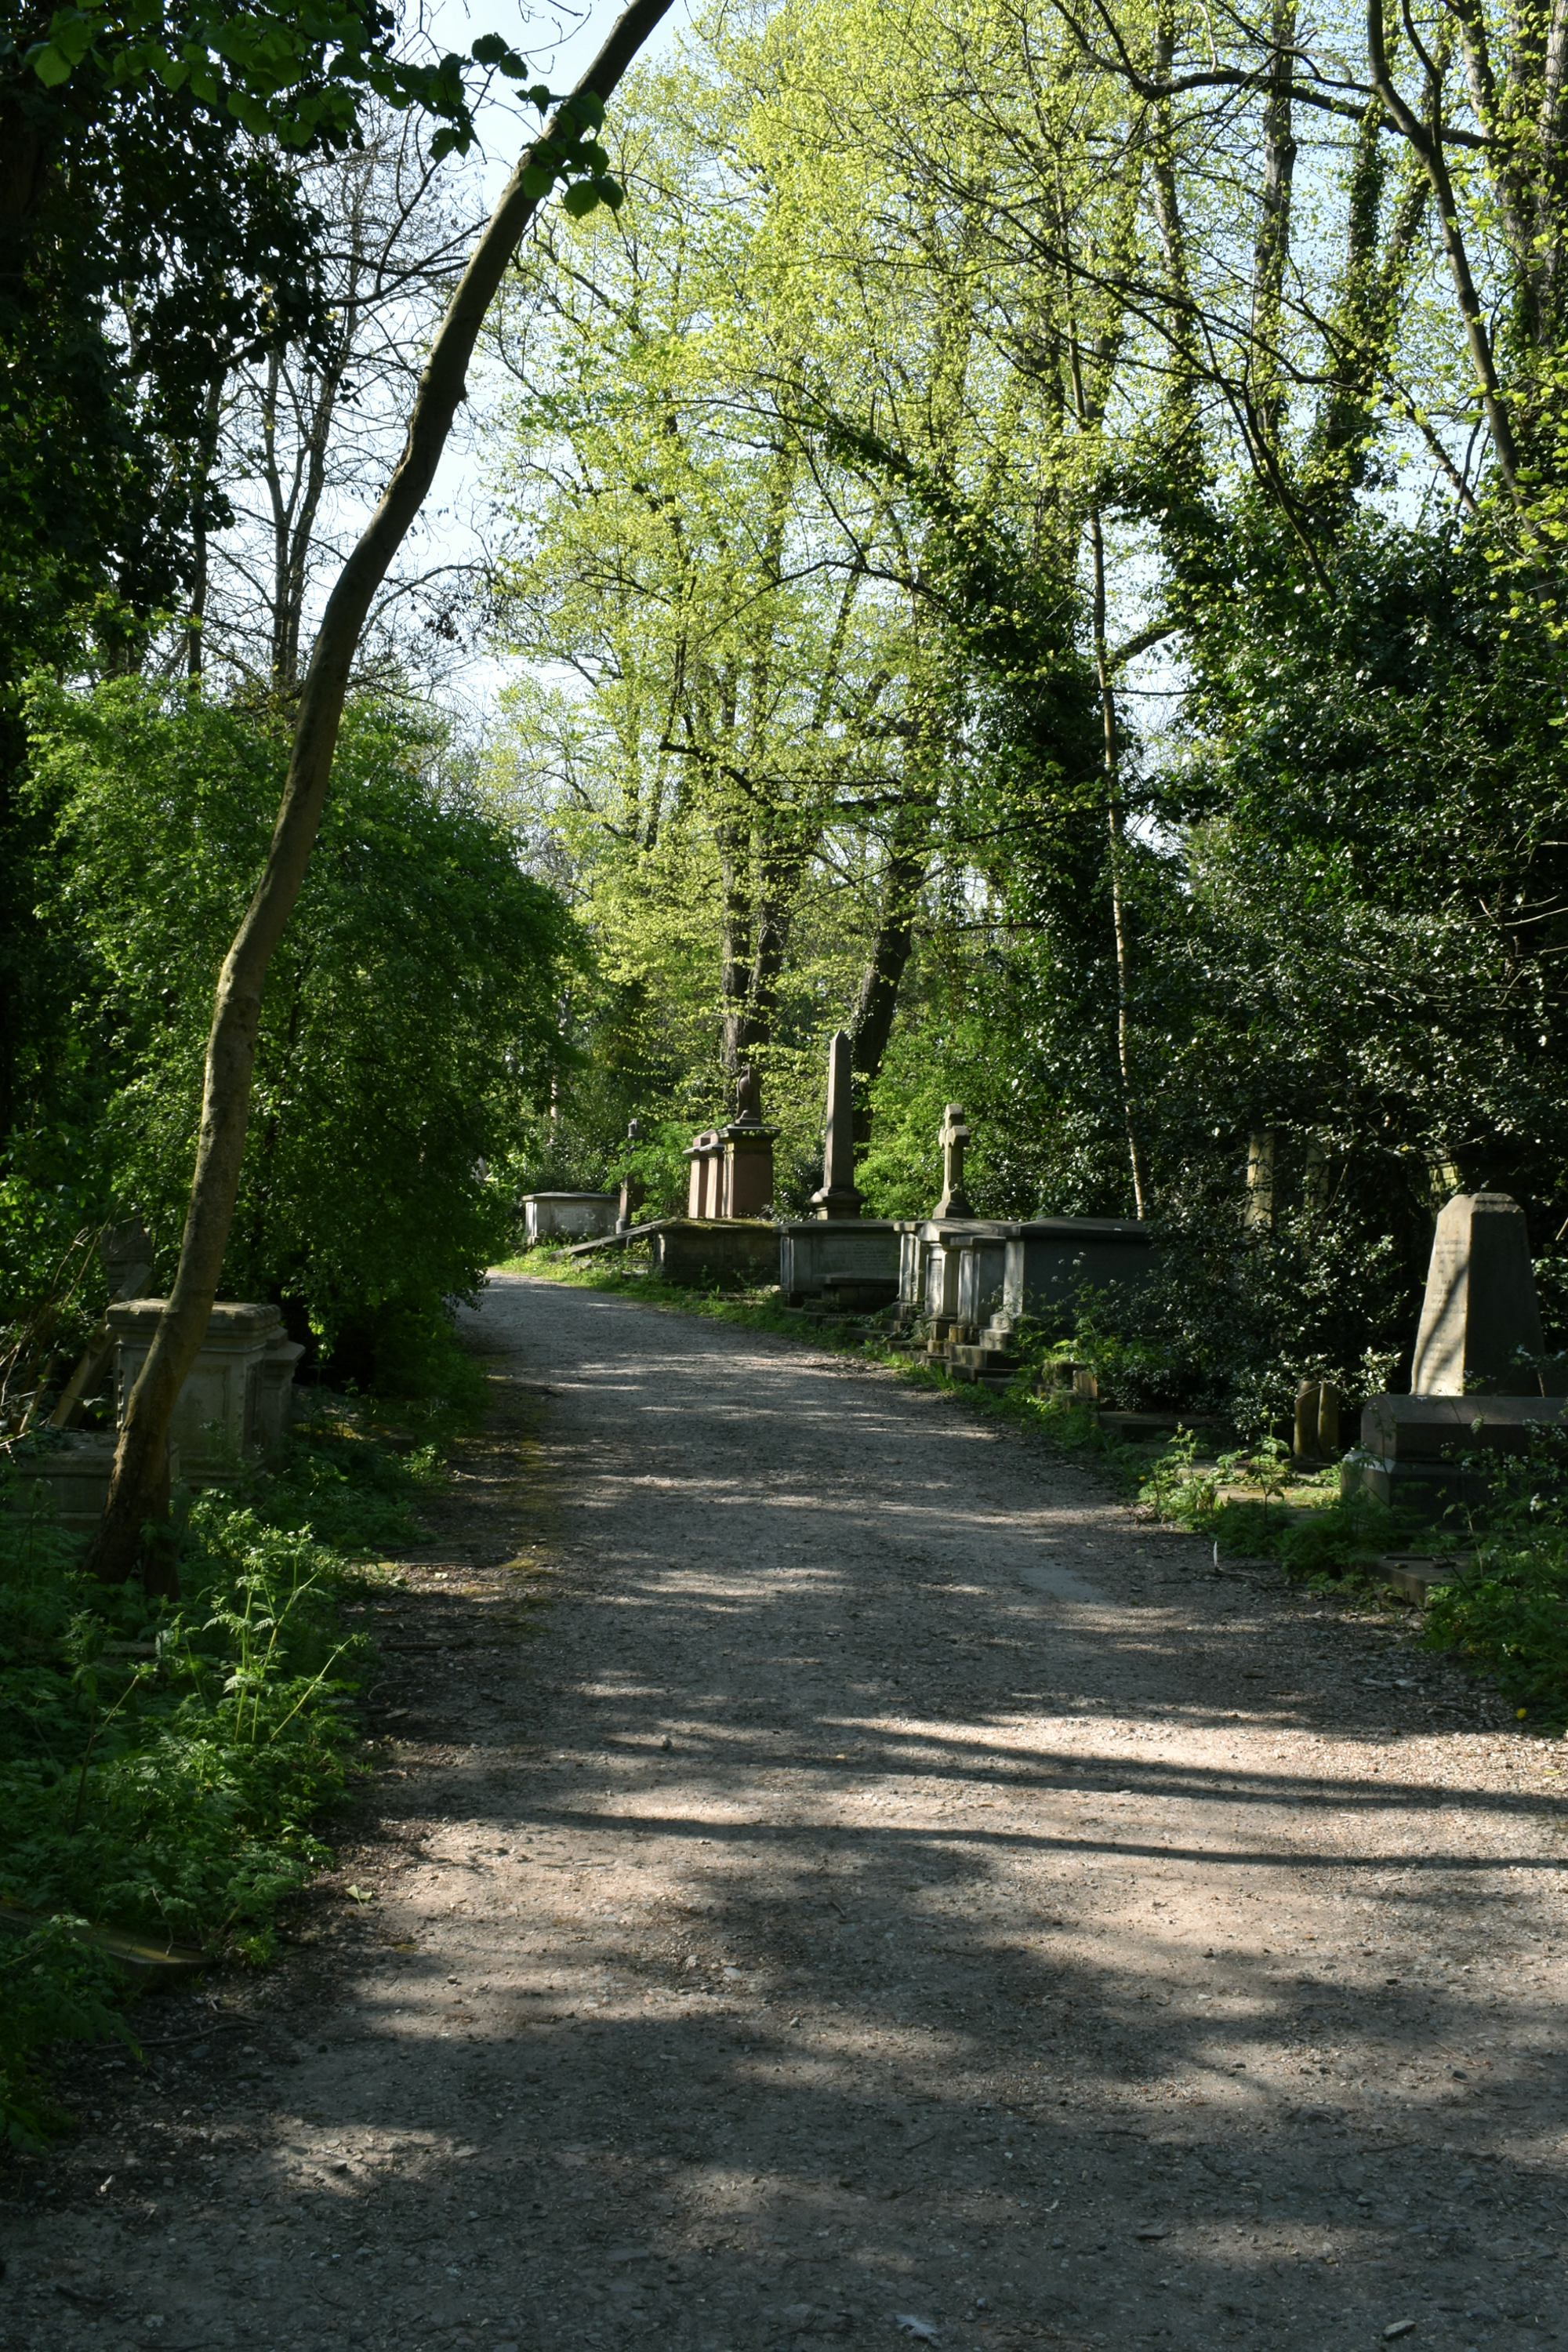 cemetery in the sunlight with path through woods